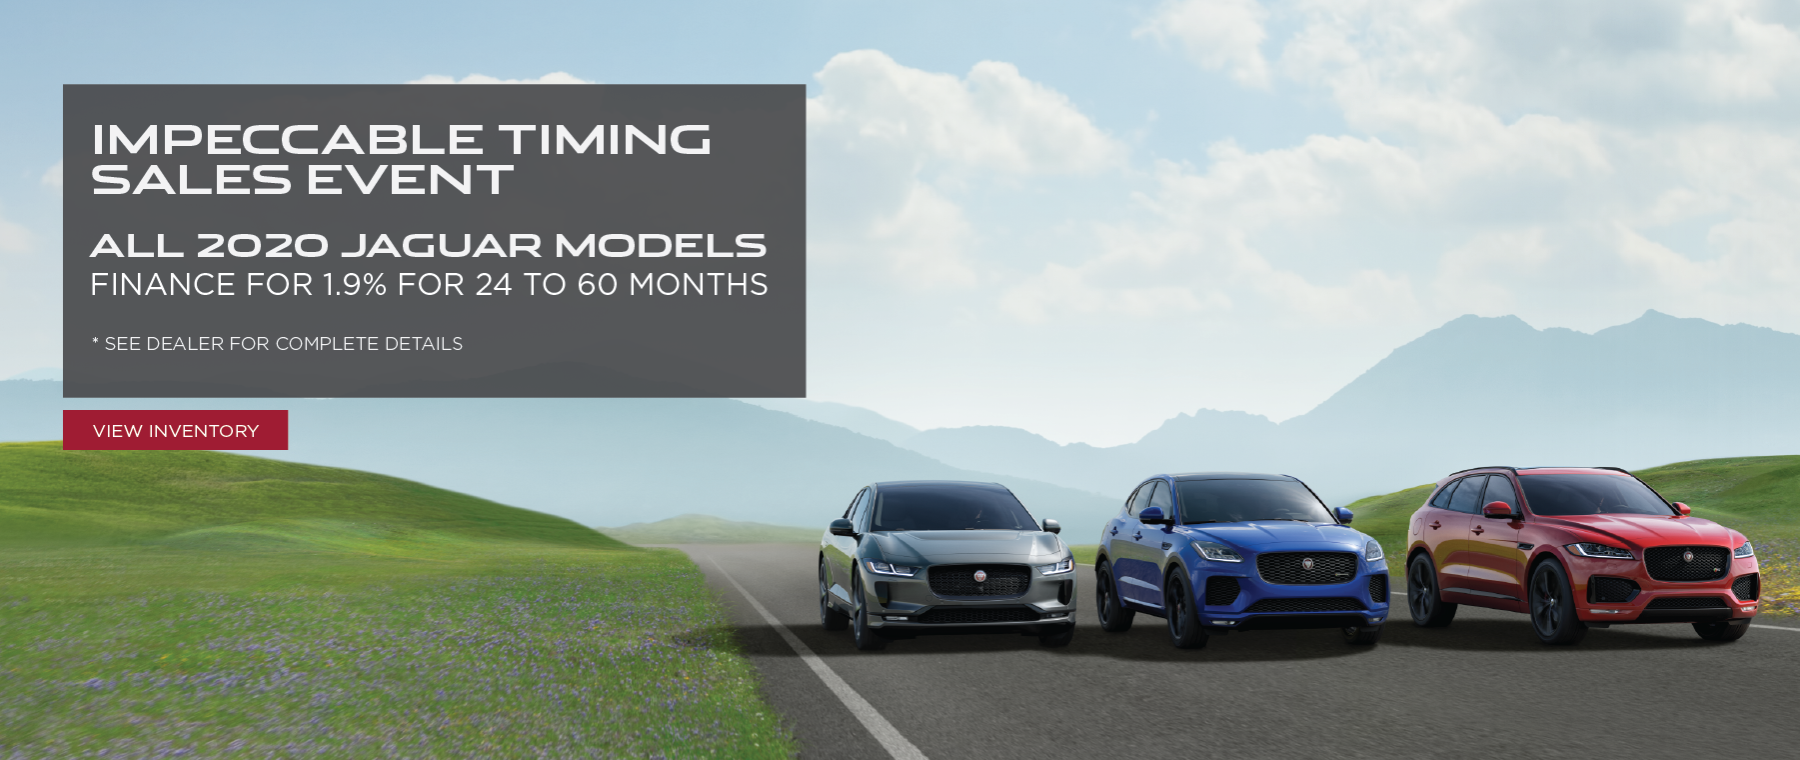 •	Jaguar Impeccable Timing Sales Event – 1.9% for 24 to 60 months on all 2020 Jaguar models . Click to view inventory.